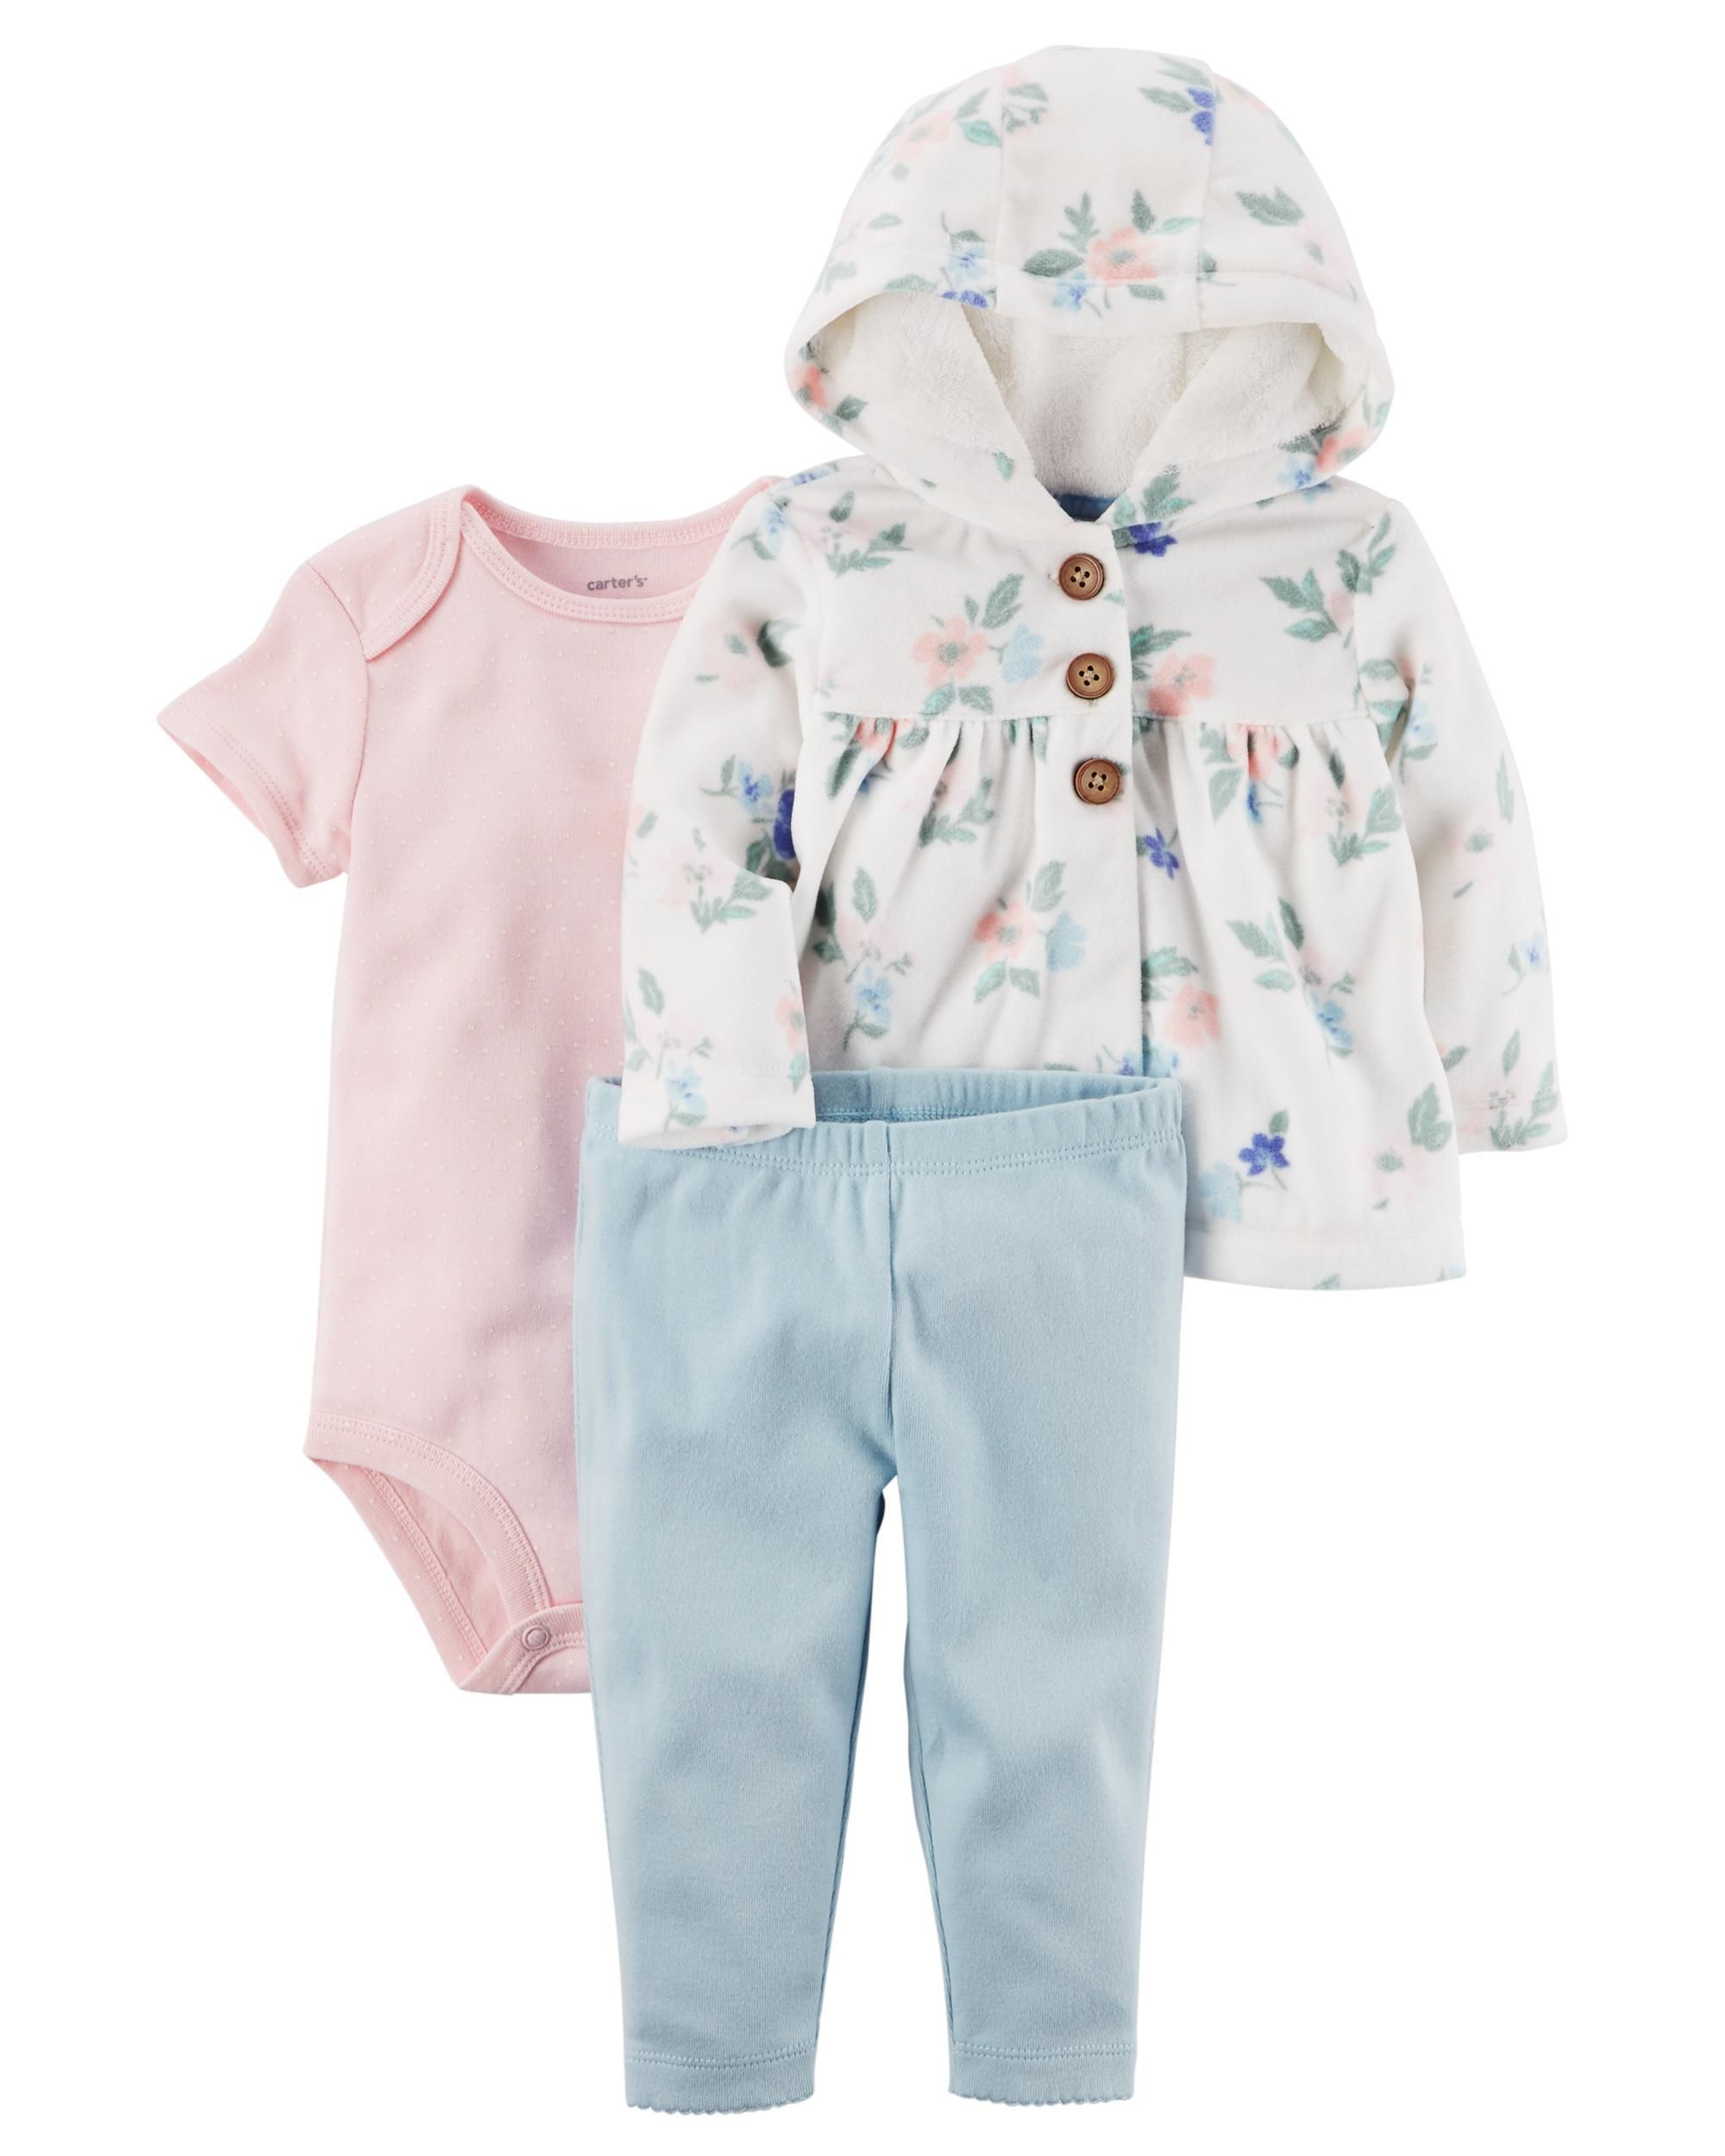 3 Piece Little Jacket Set | | Baby girl outfits